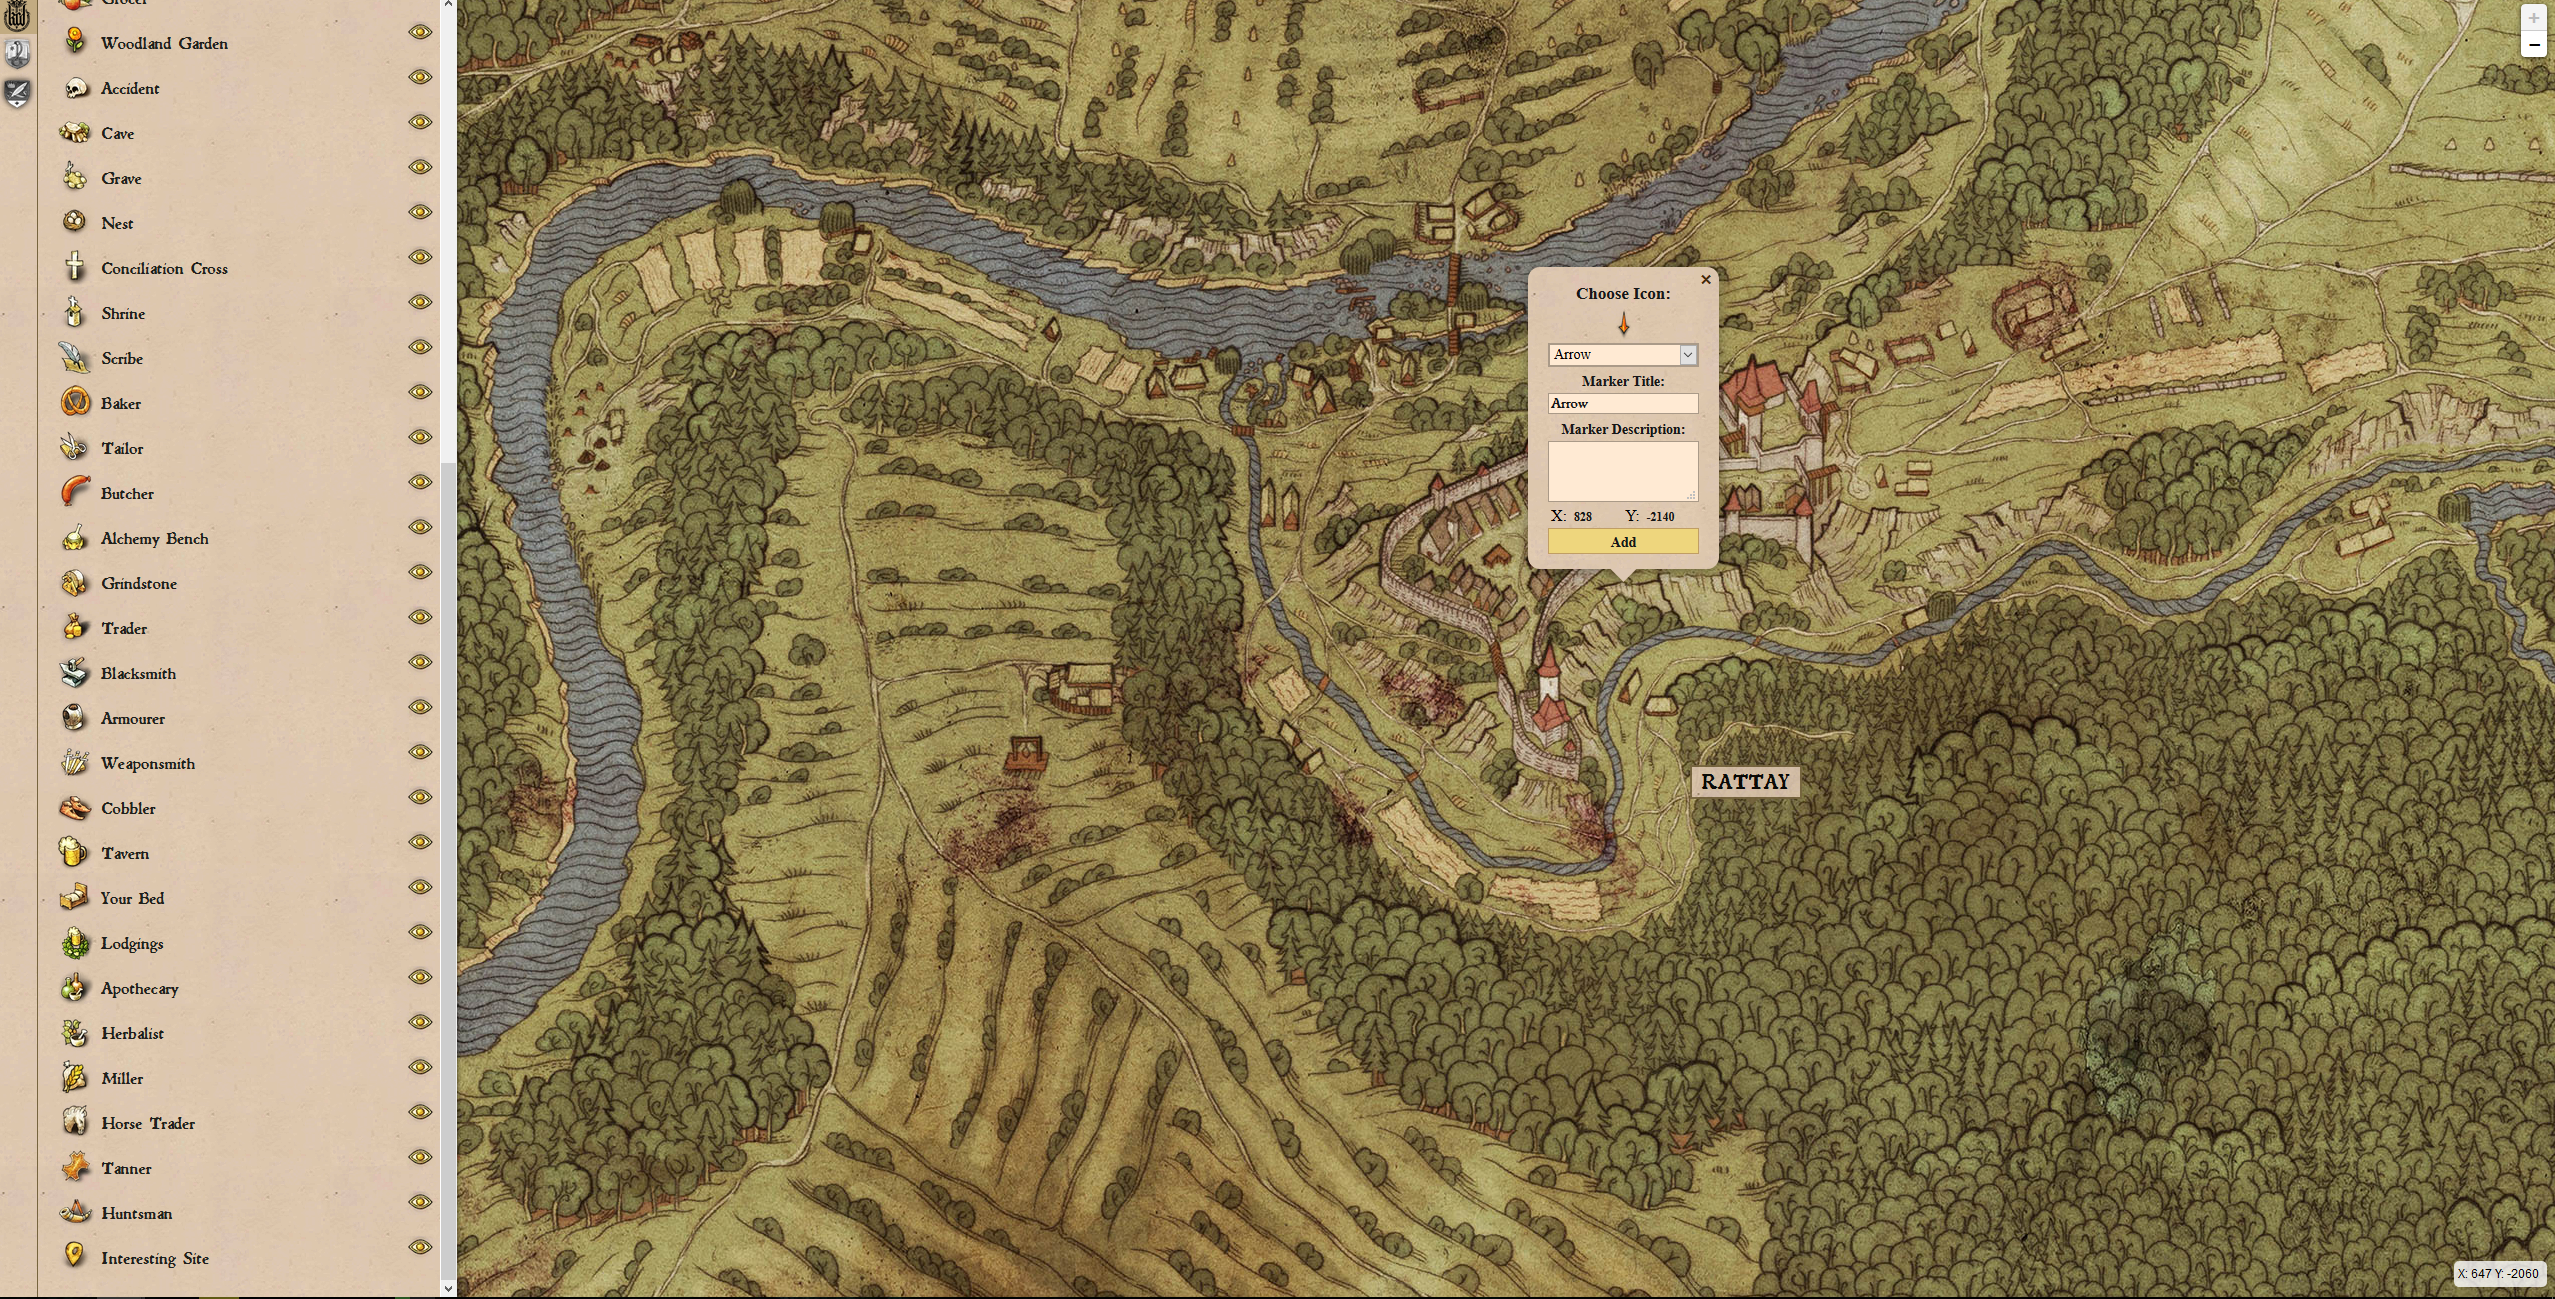 Kingdom come deliverance fan created interactive map gamespace to a fan of the game like me this can be an invaluable tool i often find places i cant access because i am too low in lockpicking or have too much gumiabroncs Gallery